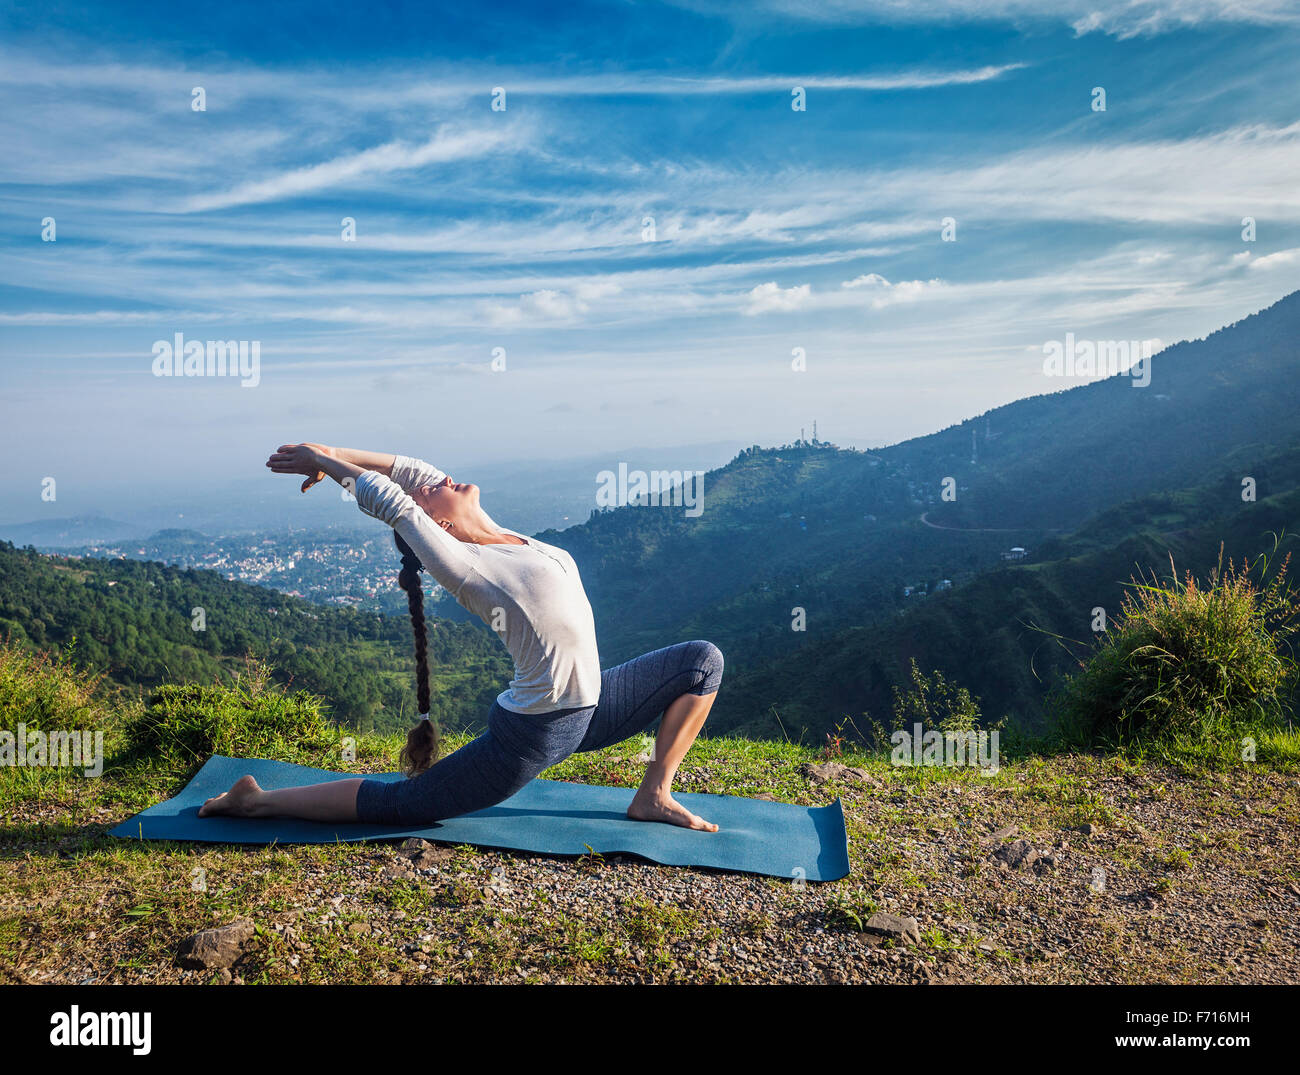 Woman practices yoga asana Anjaneyasana outdoors - Stock Image